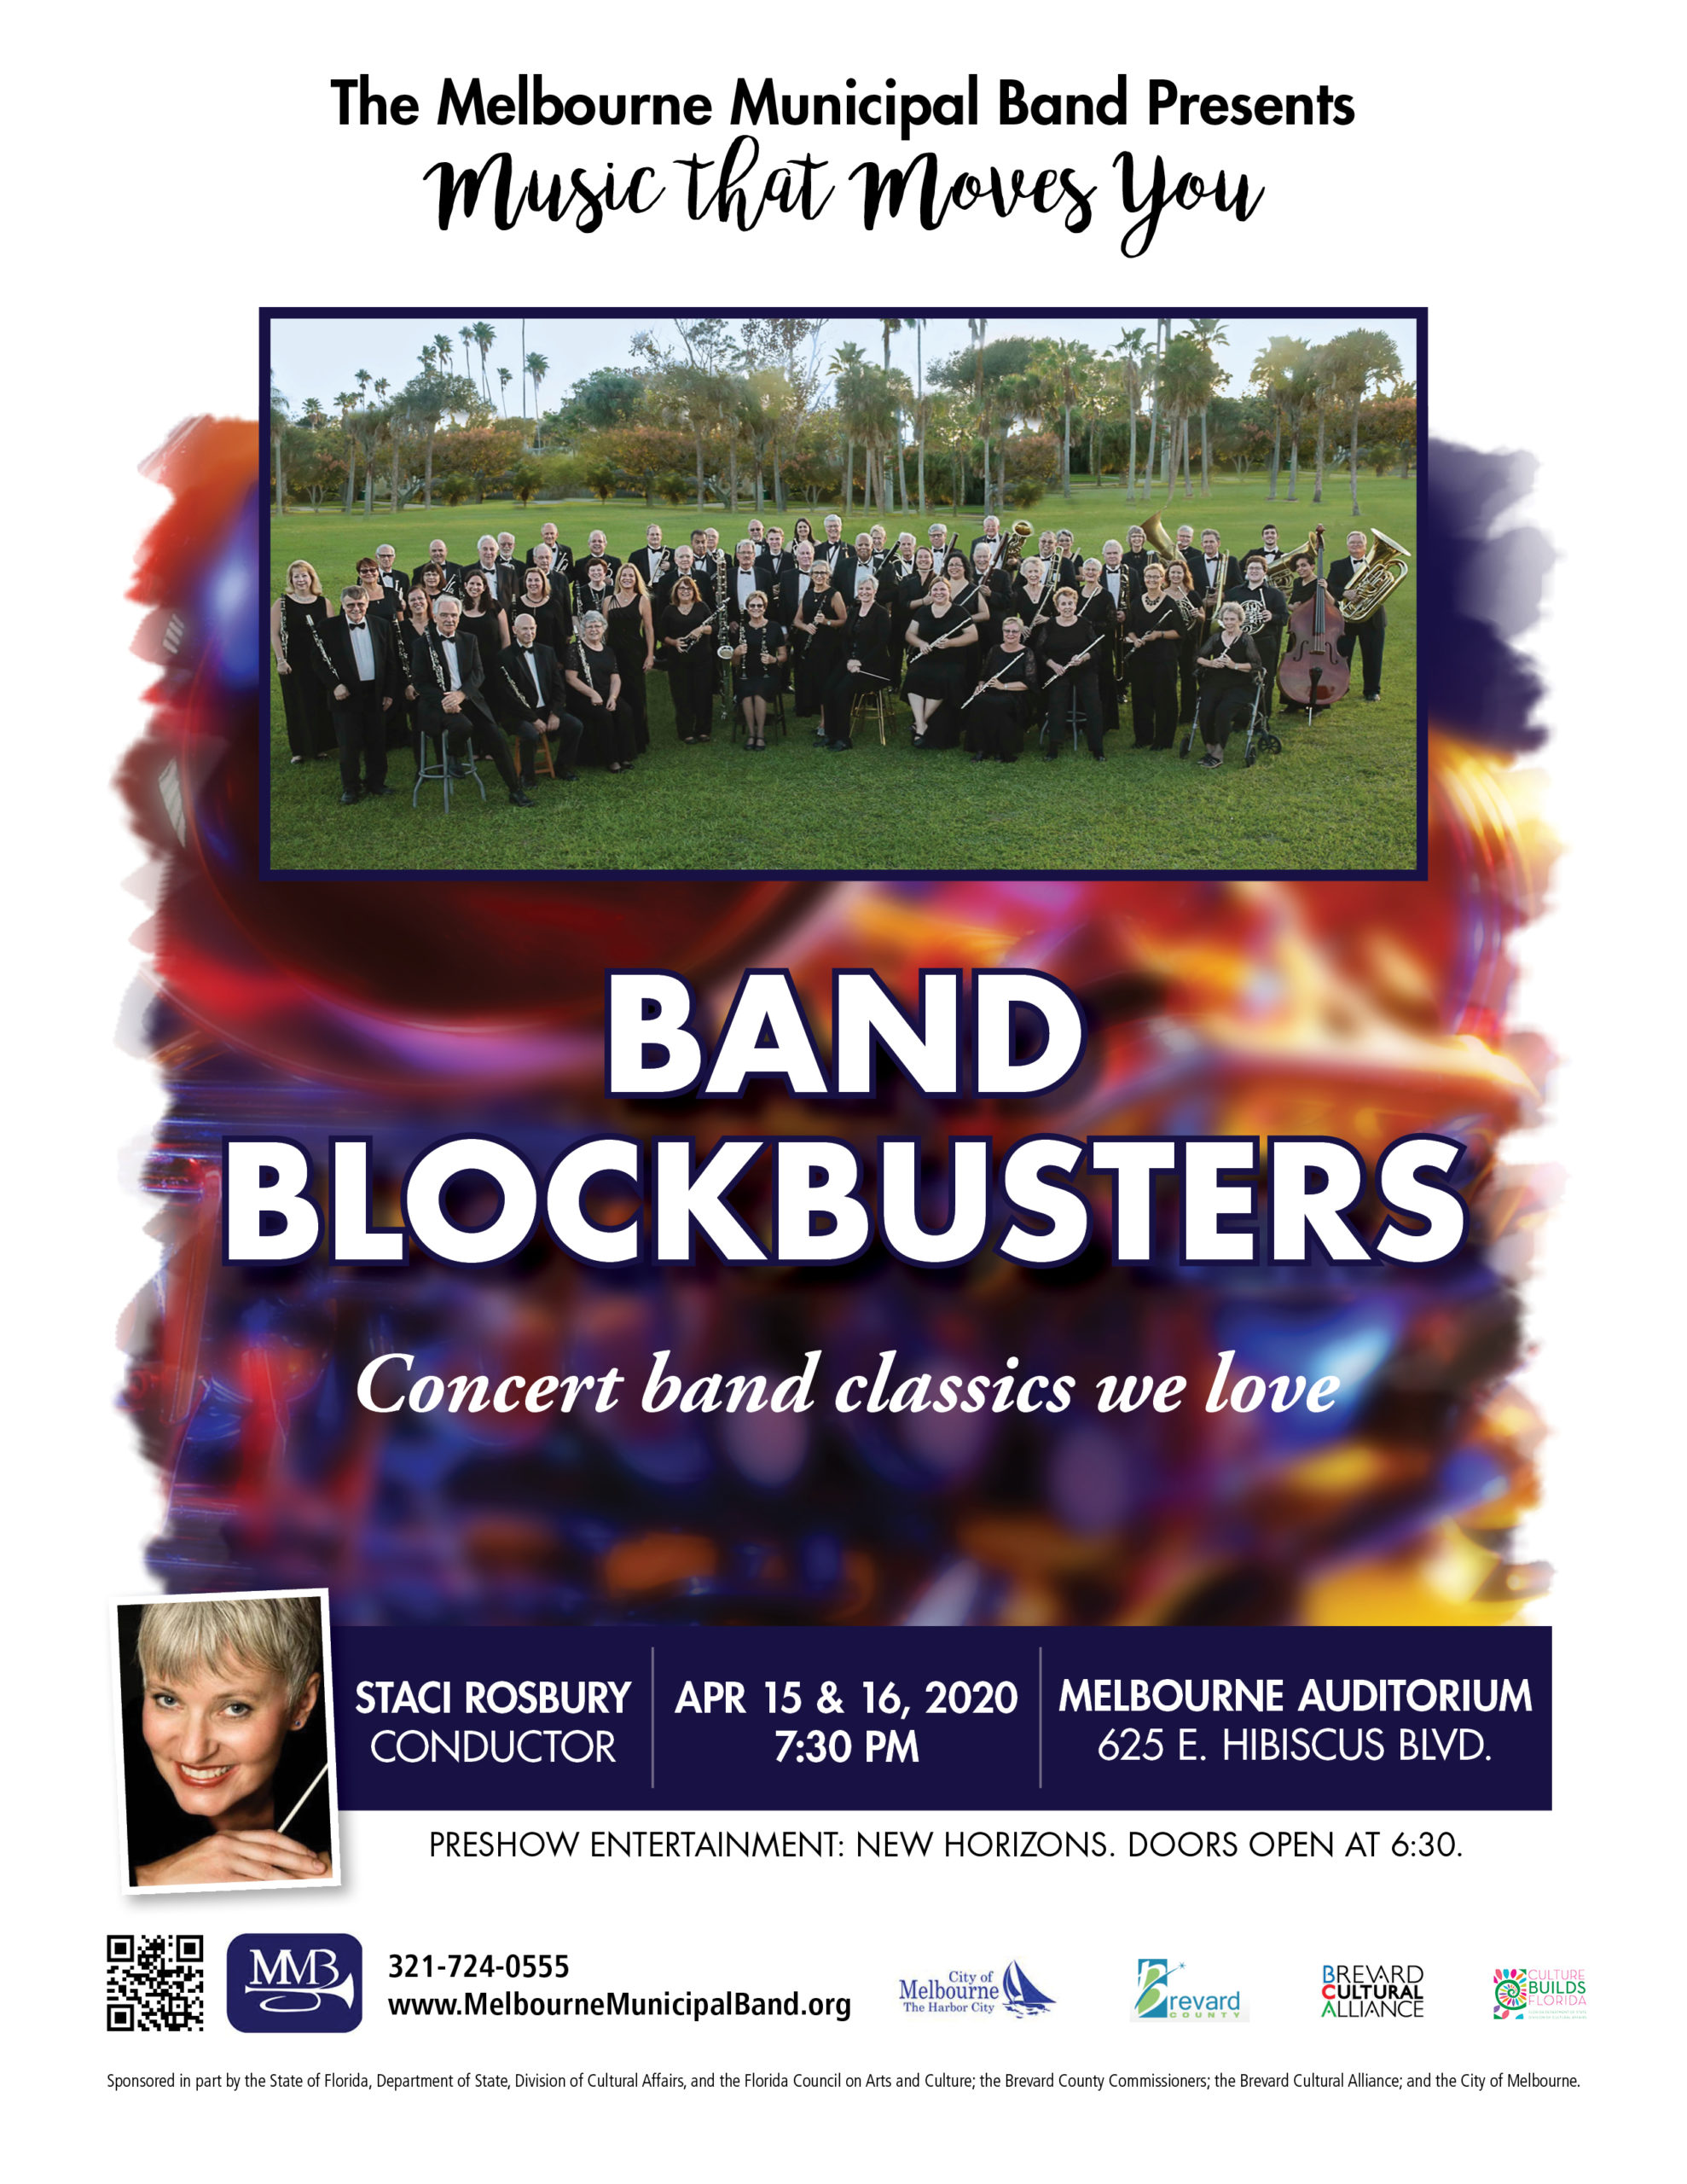 CANCELLED - Band Blockbusters presented by The Melbourne Municipal Band